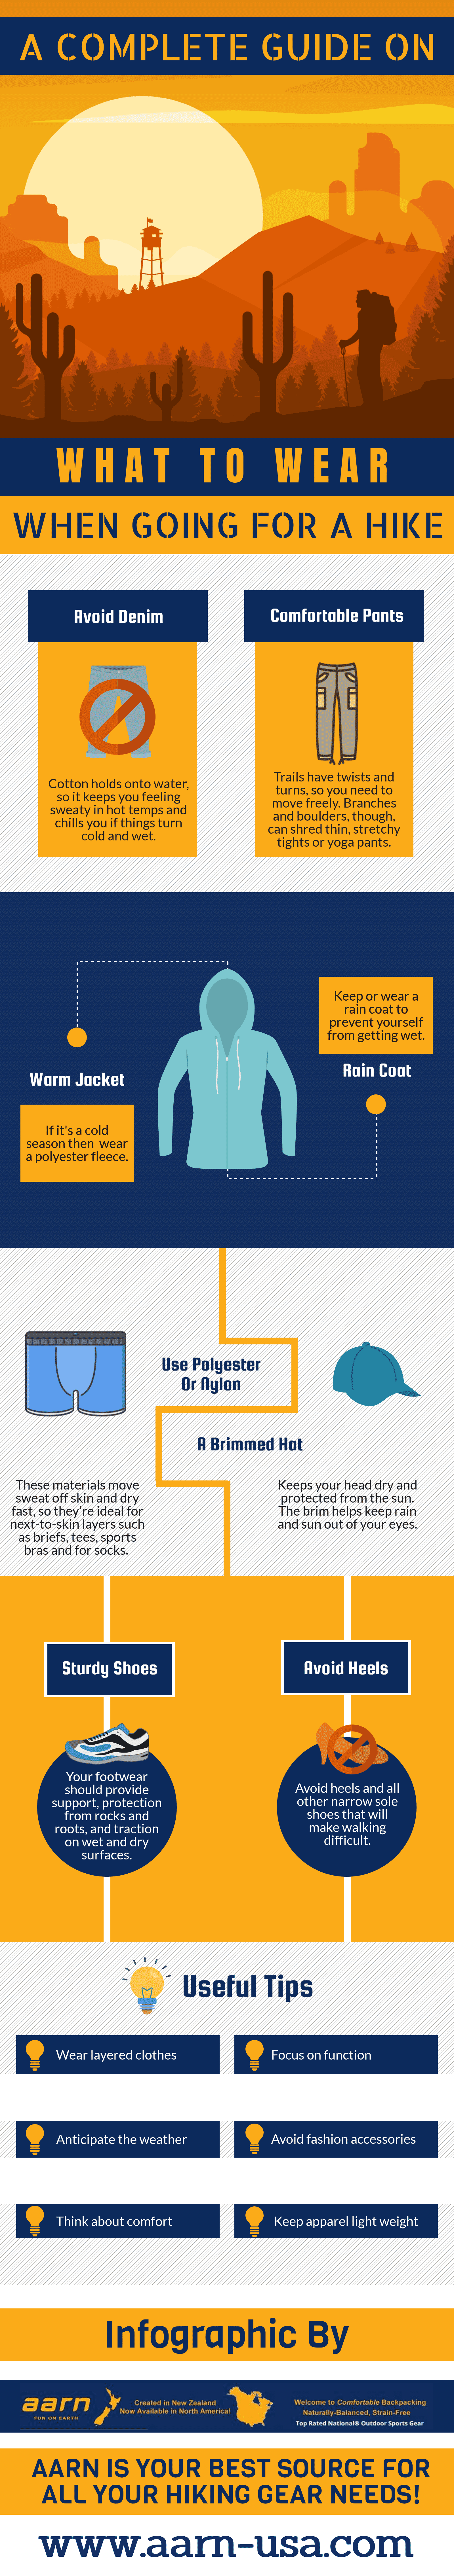 What to wear on a hike infographic